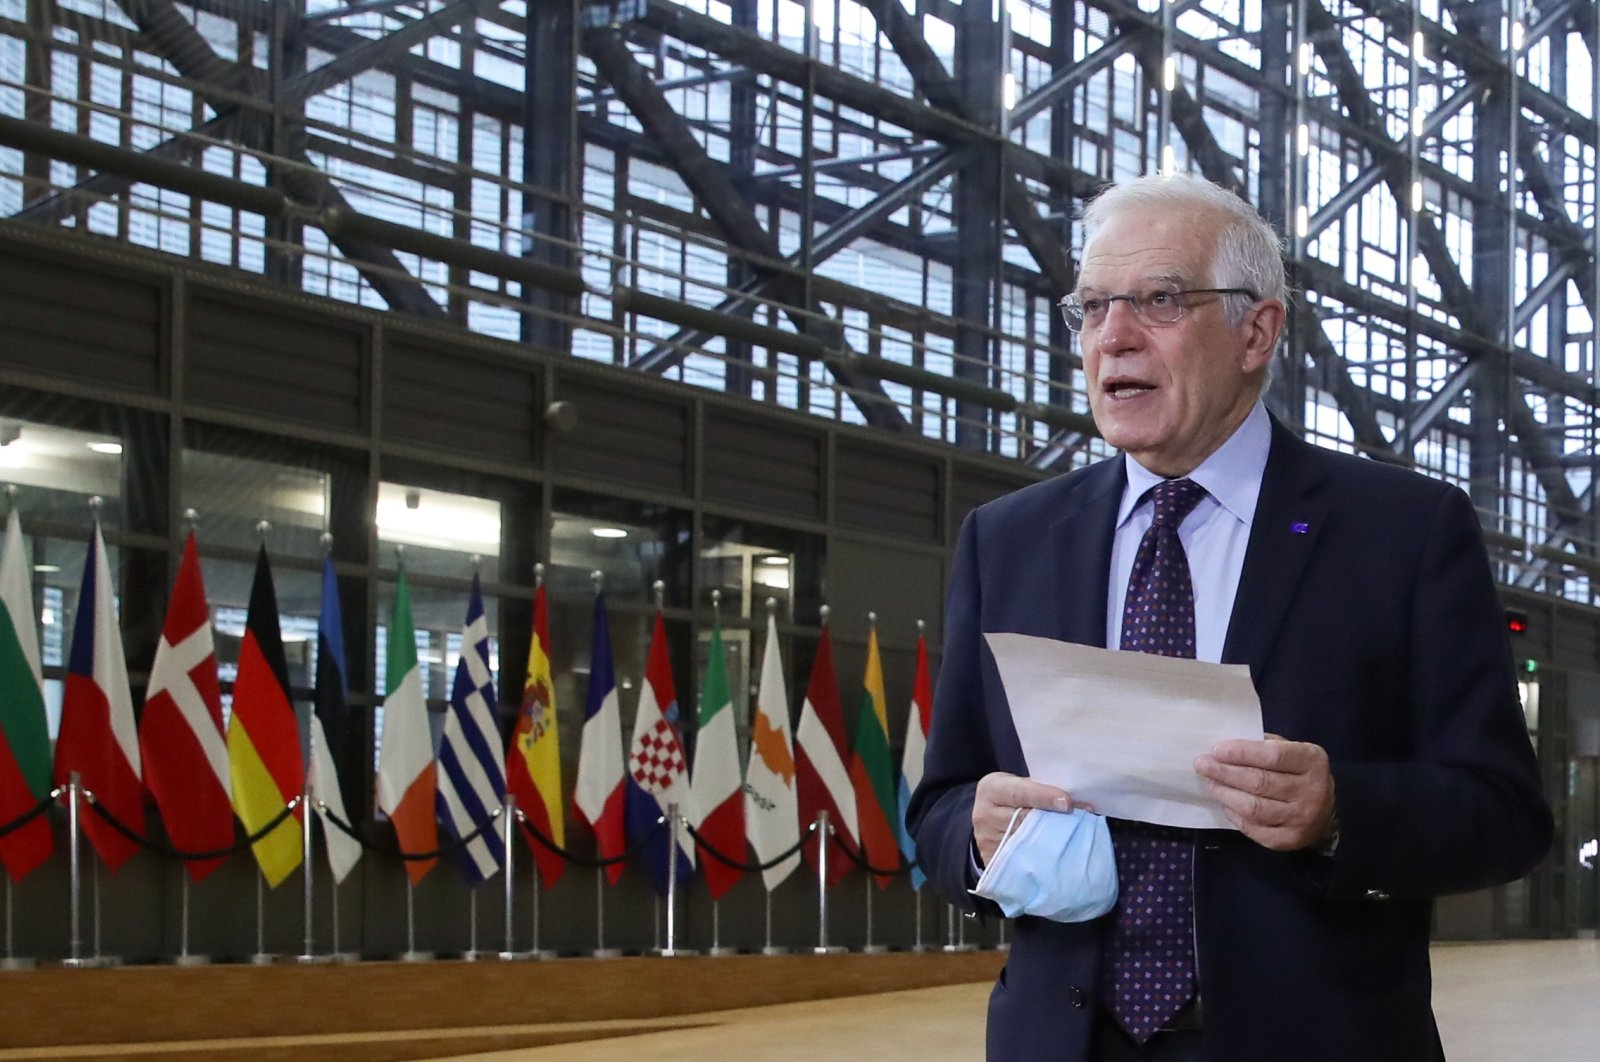 European Union High Representative for Foreign Affairs and Security Policy Josep Borrell speaks to the media as he arrives to attend an EU foreign ministers meeting in Brussels, Belgium, Feb. 22, 2021. (Reuters Photo)